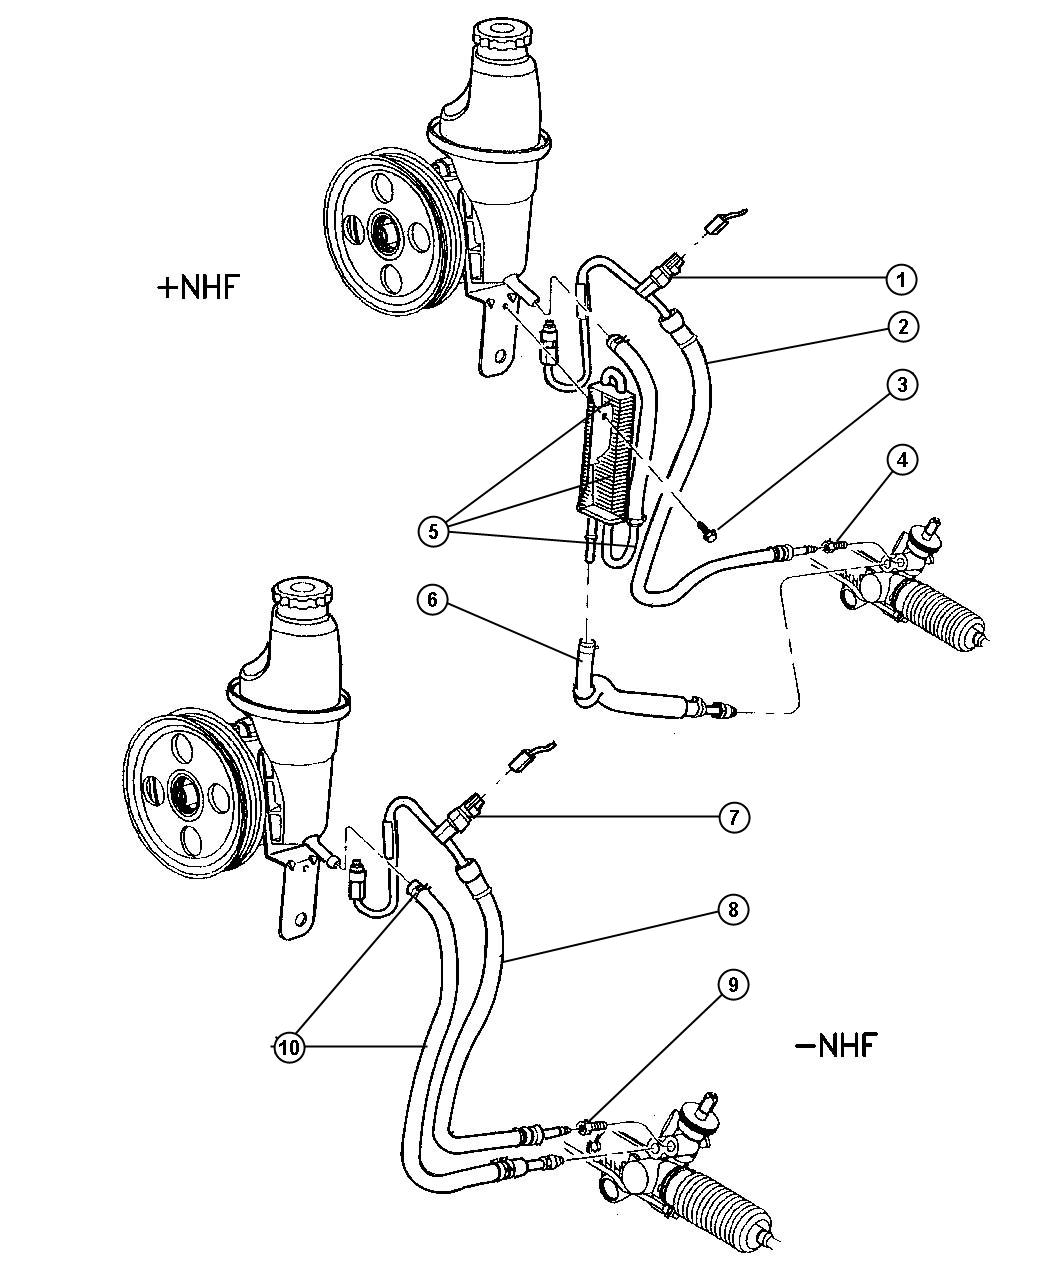 2006 Dodge Caravan Steering Column Parts Diagram. Dodge